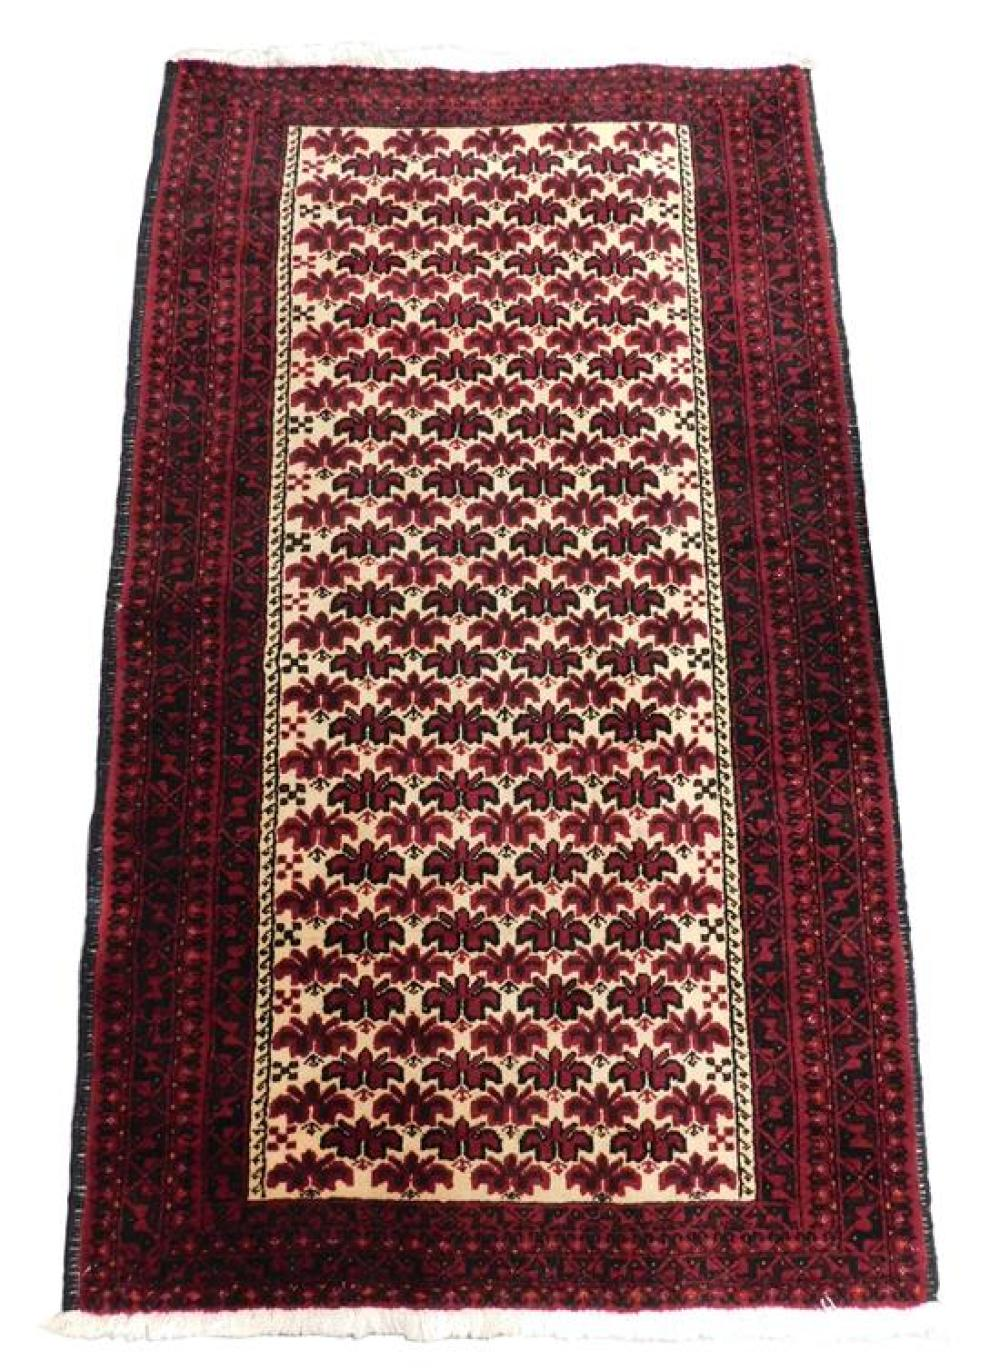 """RUG: Persian Belouch, 3'8"""" x 6'2"""", hand-knotted, 100% wool on cotton, red and black design on cream ground, alternating rows of repe."""